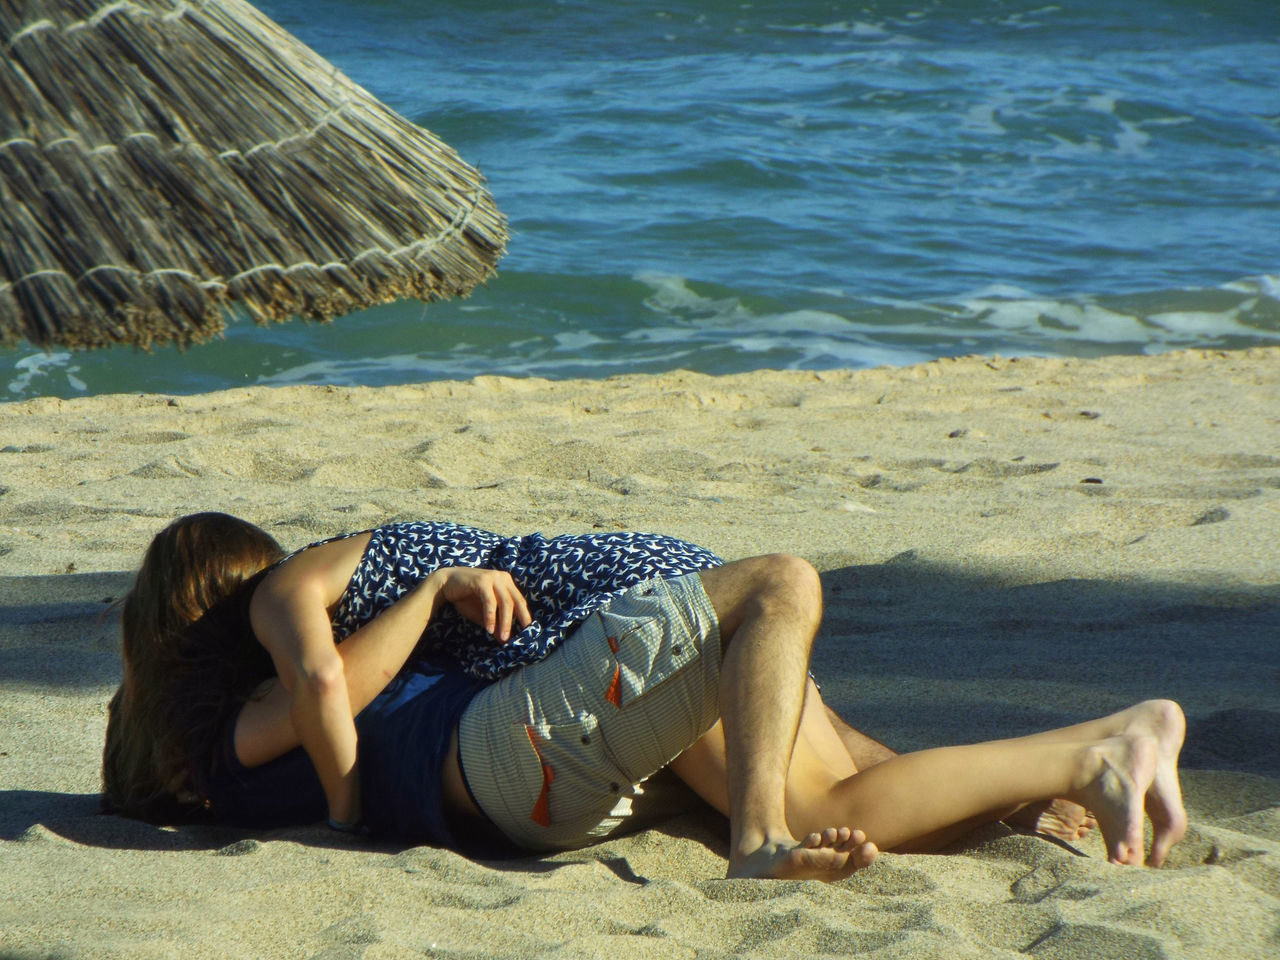 Barefoot Beach Casual Clothing Couple Day Enjoyment Leisure Activity Lifestyles Love ♥ Lying Down Nature Outdoors Relaxation Relaxing Resting Romp In The Sand Shore Sitting Summer Tourism Tranquility Vacations Water